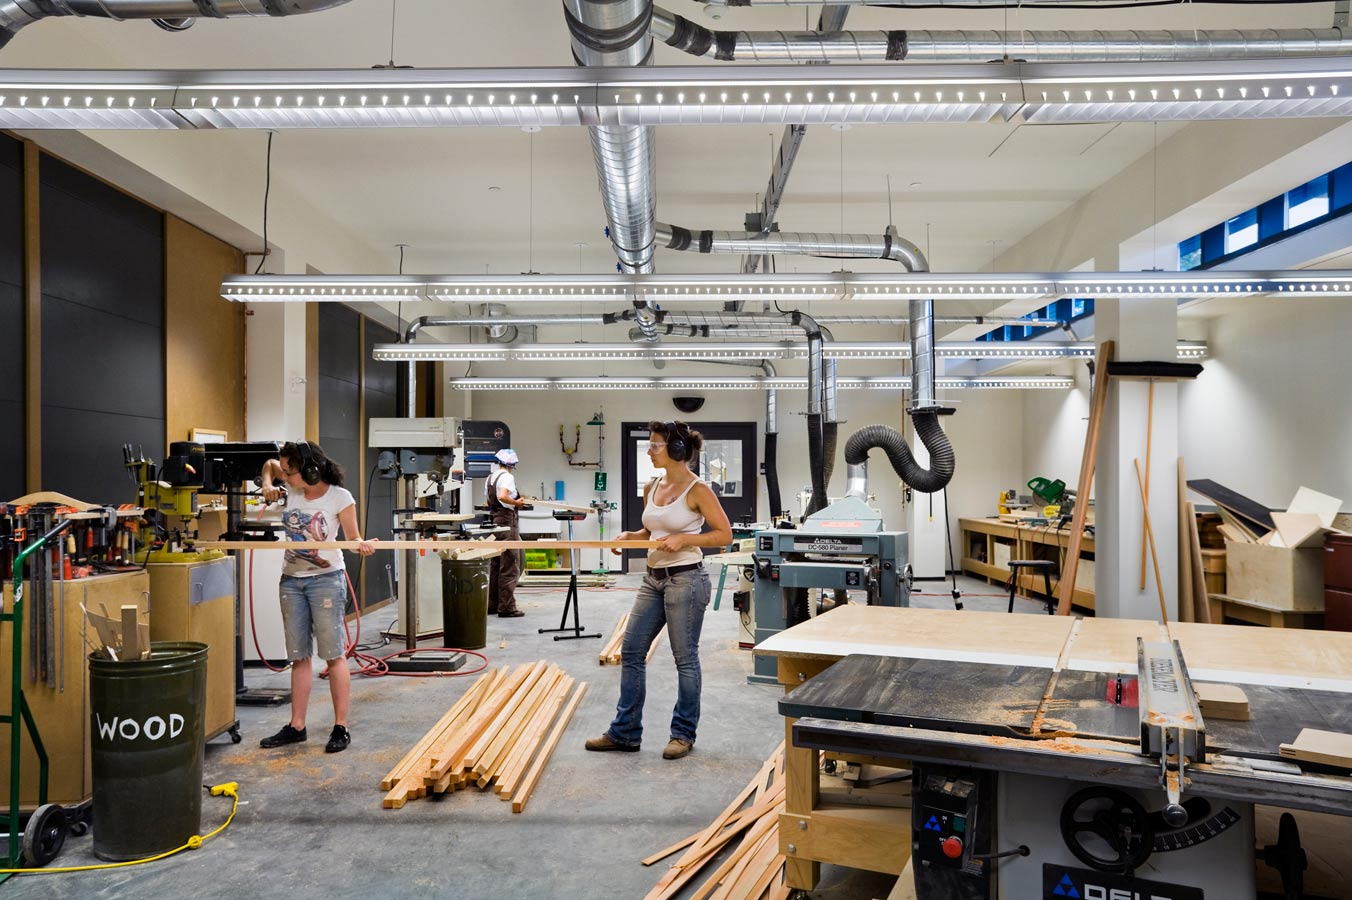 <p>Workshops are equipped with comprehensive exhaust systems that adjust to the number of machines running, ensuring the removal of airborne irritants while preventing a constant exhaust that would waste energy. To ensure that hazardous materials are not introduced on the studio levels and re-circulated through the building, an air monitoring system has been installed.  This sampling system can be used for routine monitoring and diagnostics in the event of an air quality problem. <br><small>© Peter Aaron/OTTO</small></p>